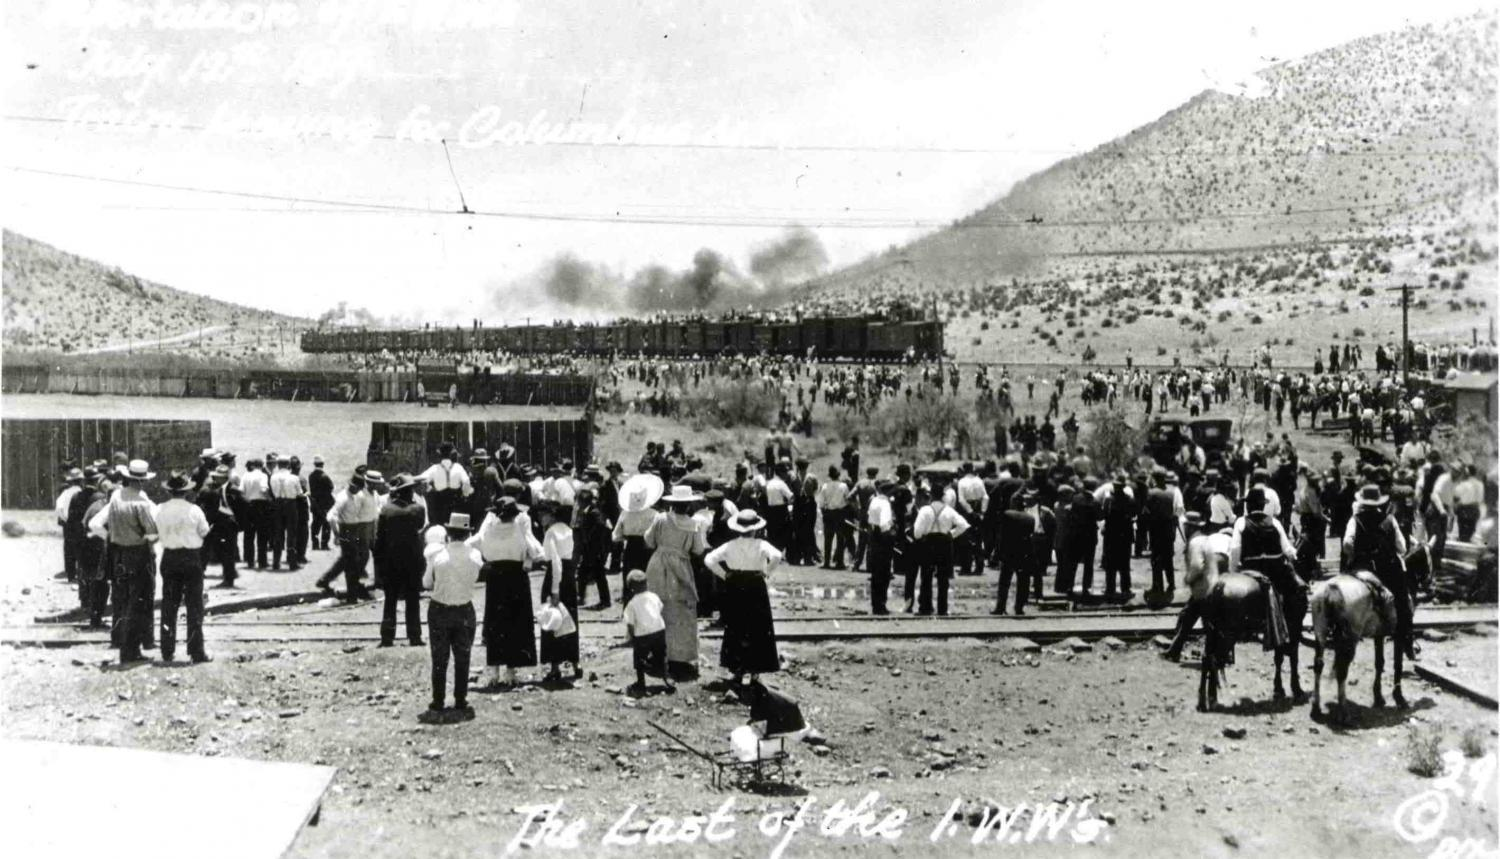 (Courtesy of the Bisbee Mining & Historical Museum, a Smithsonian Affiliate)